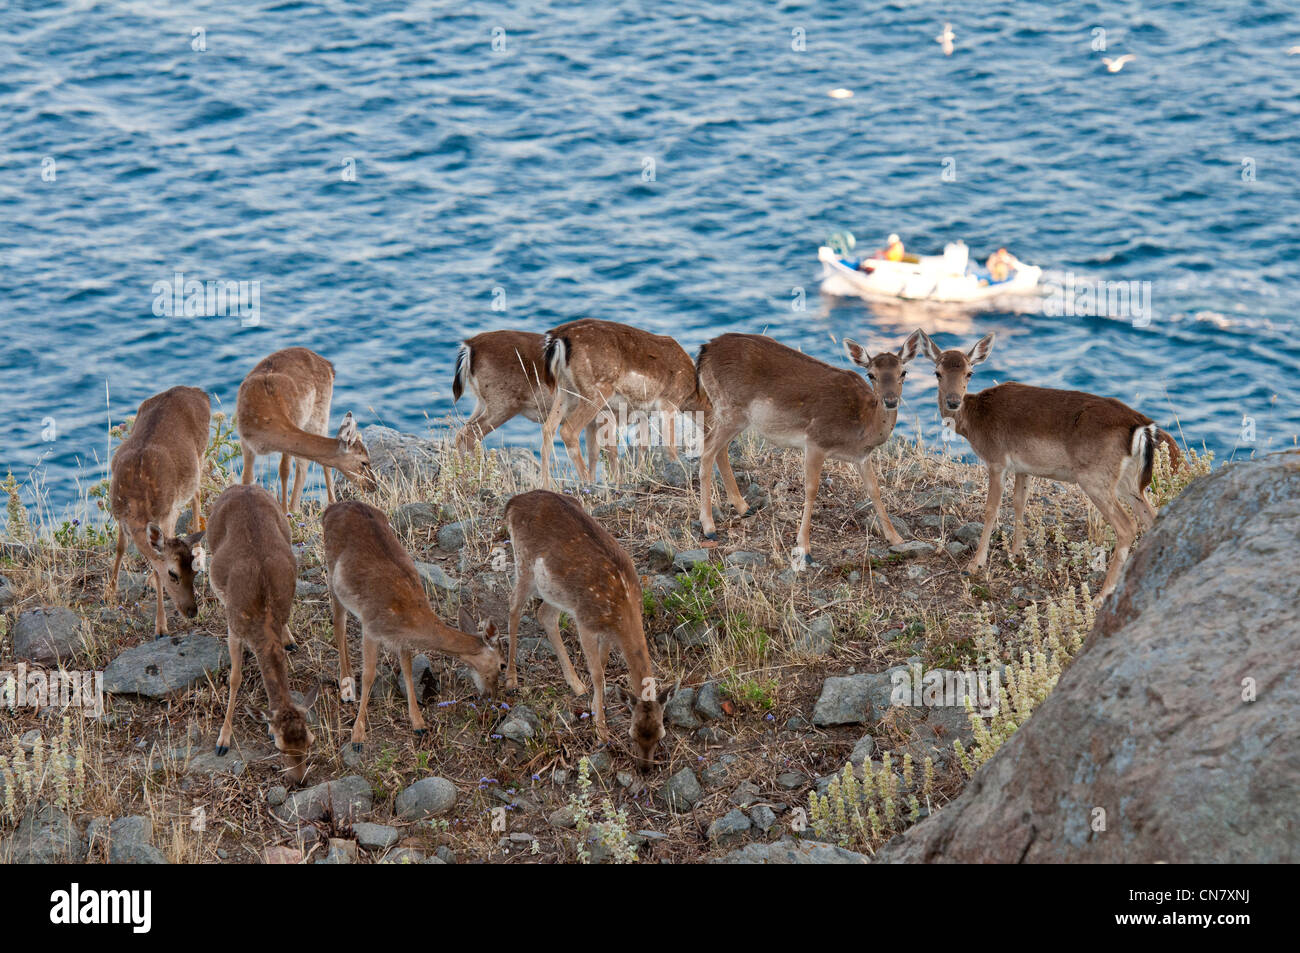 Greece, Lemnos Island, Myrina, capital town and main harbour of the island, deer wander in the ruins of 12th century - Stock Image